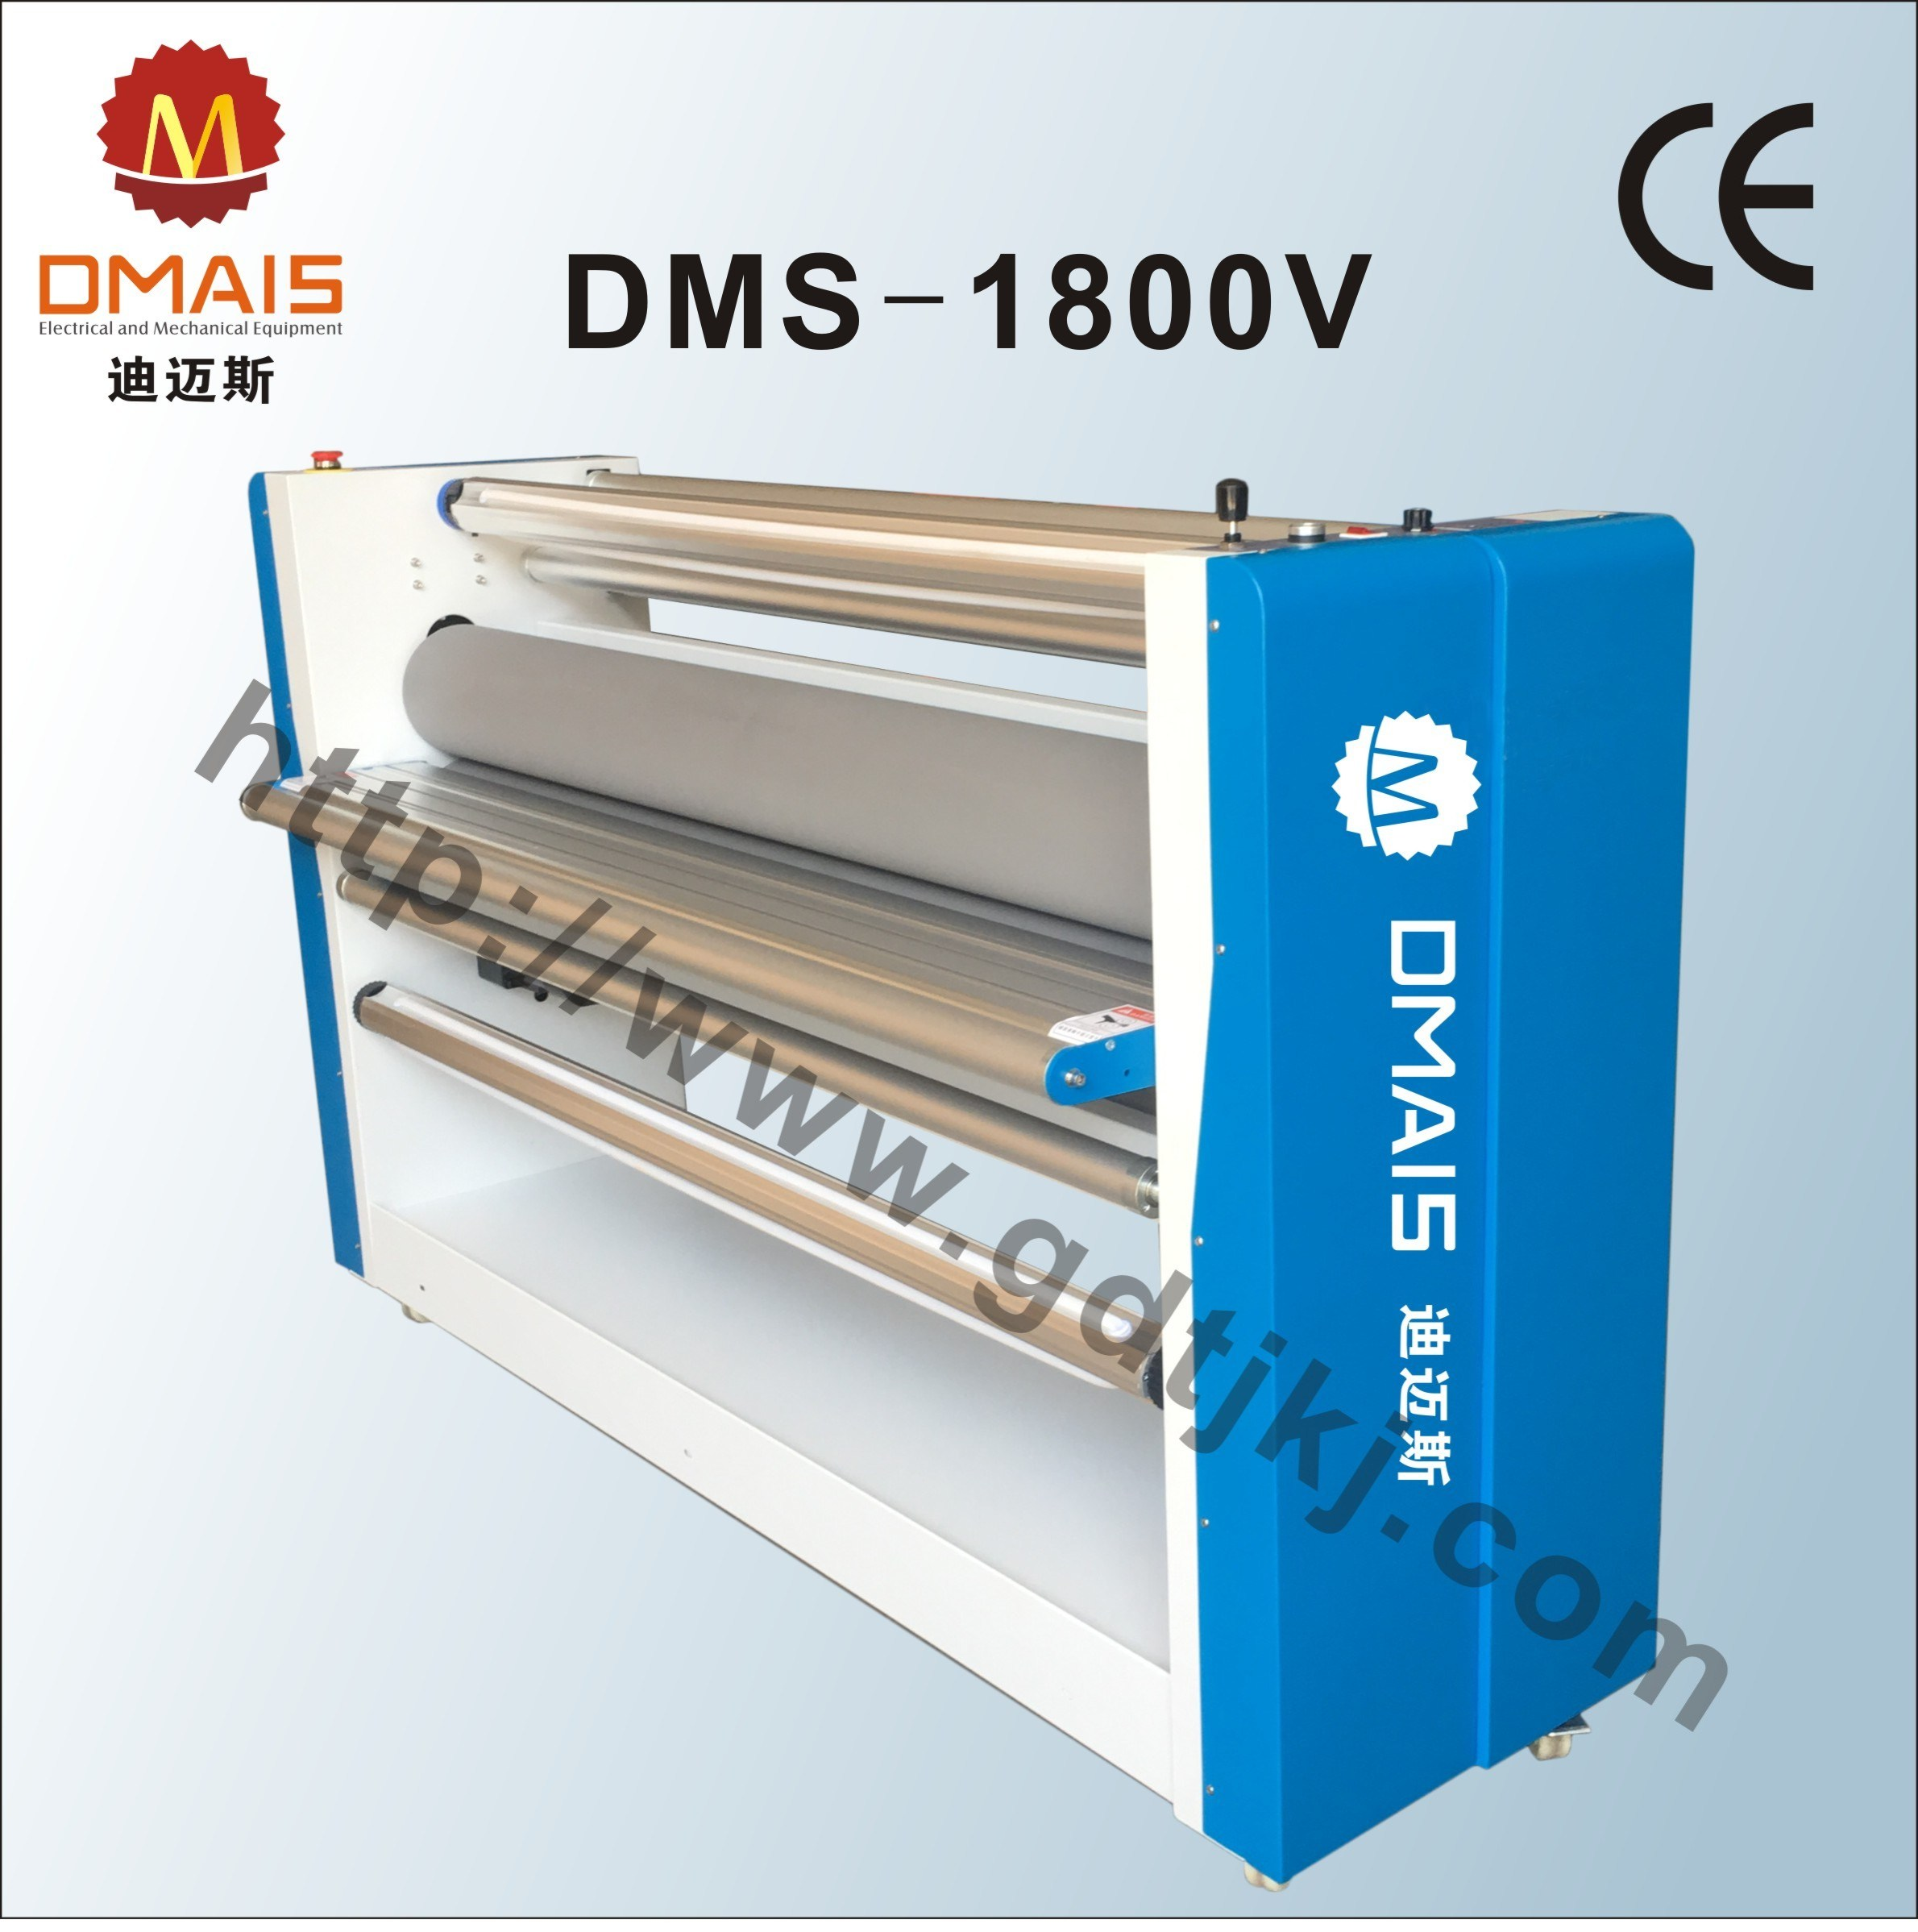 Full-Auto 30m/Min Mutil-Function Warm and Cold Laminator with Cutter